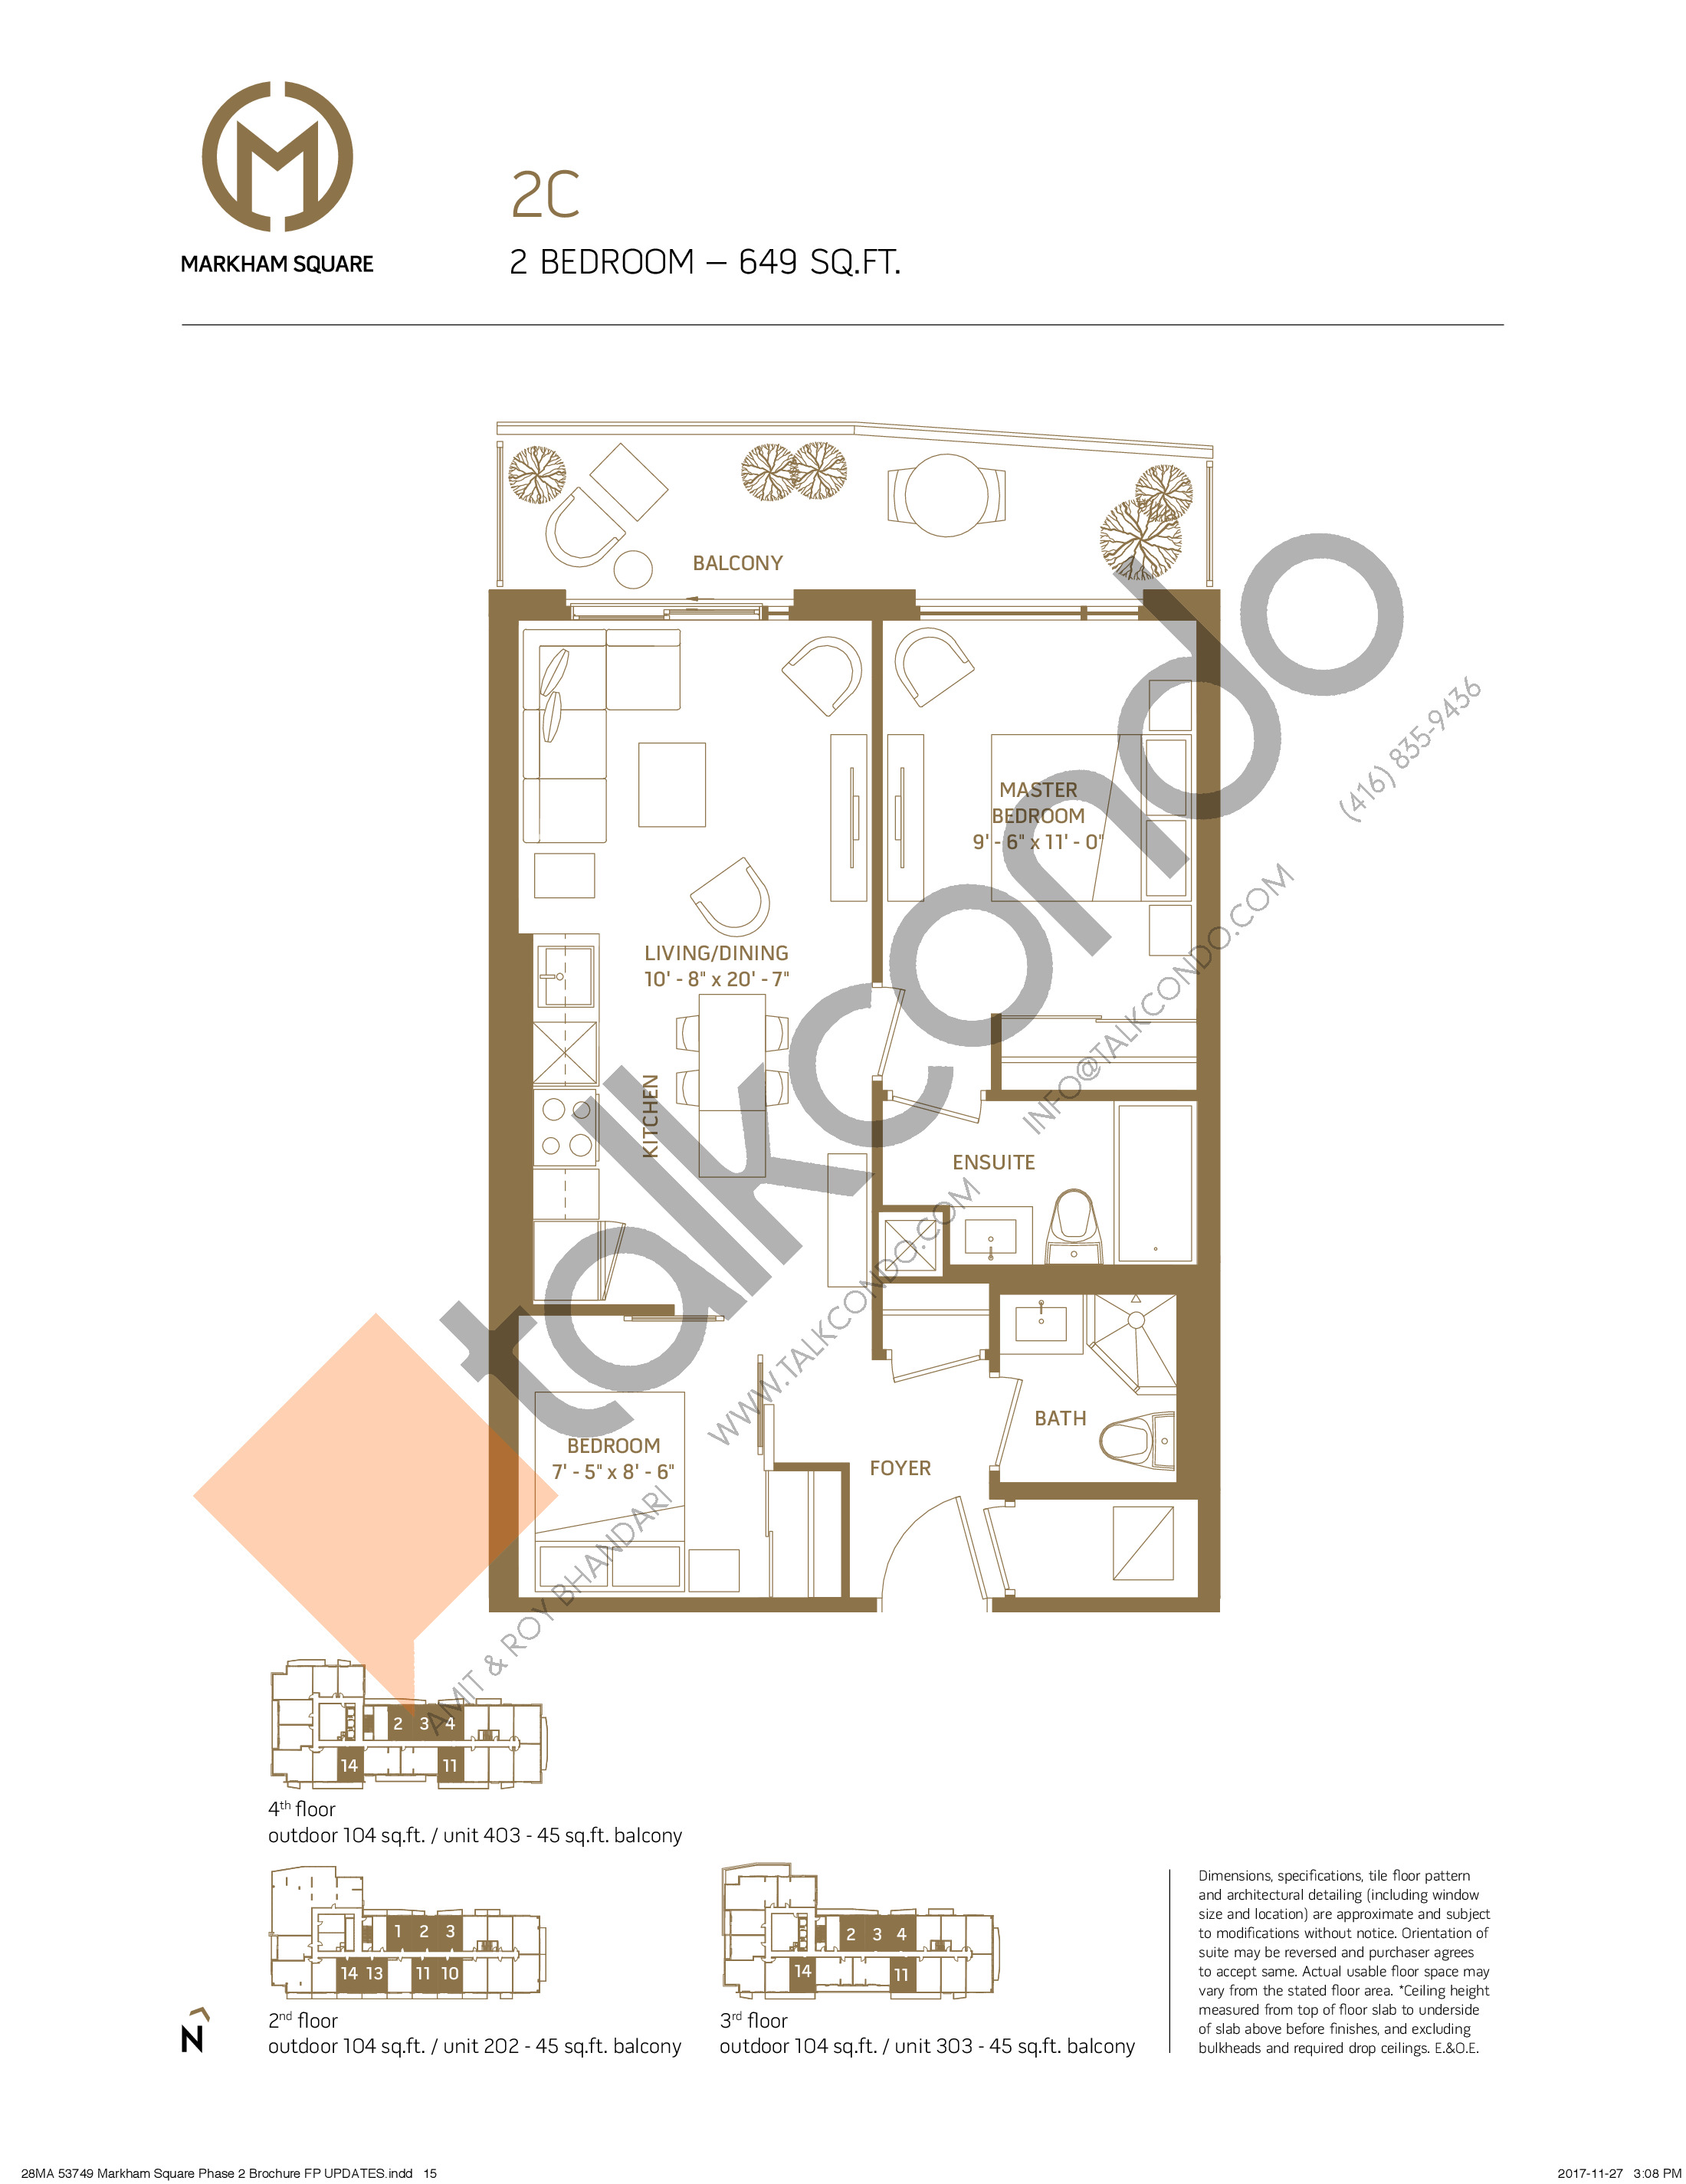 2C - East Tower Floor Plan at Markham Square Condos - 649 sq.ft